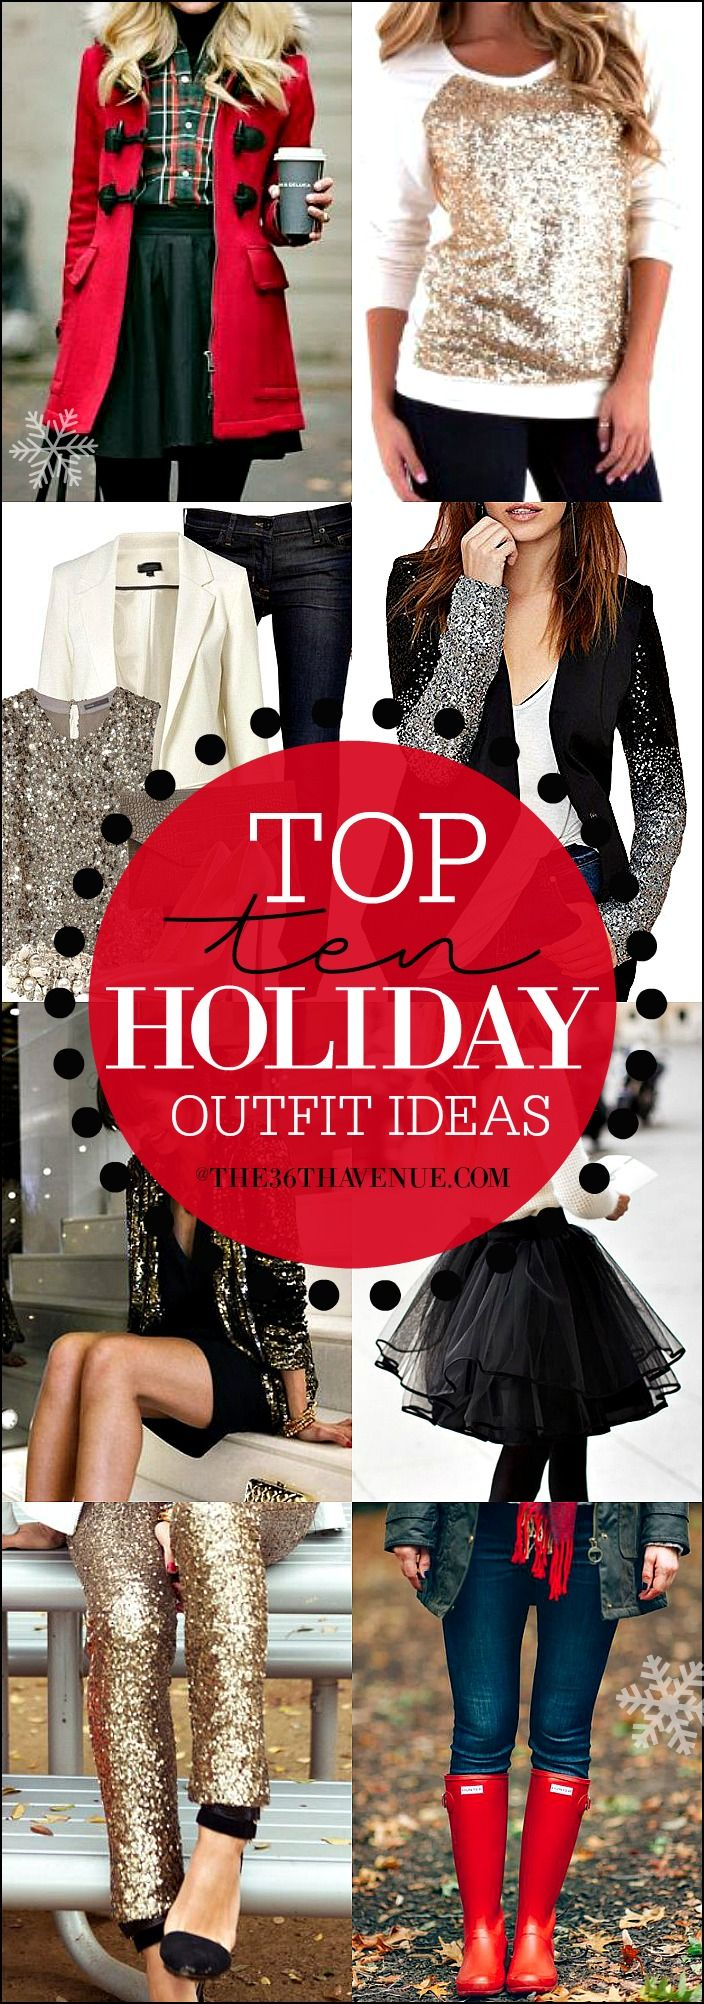 holiday outfit ideas  women's fashion  holiday outfits